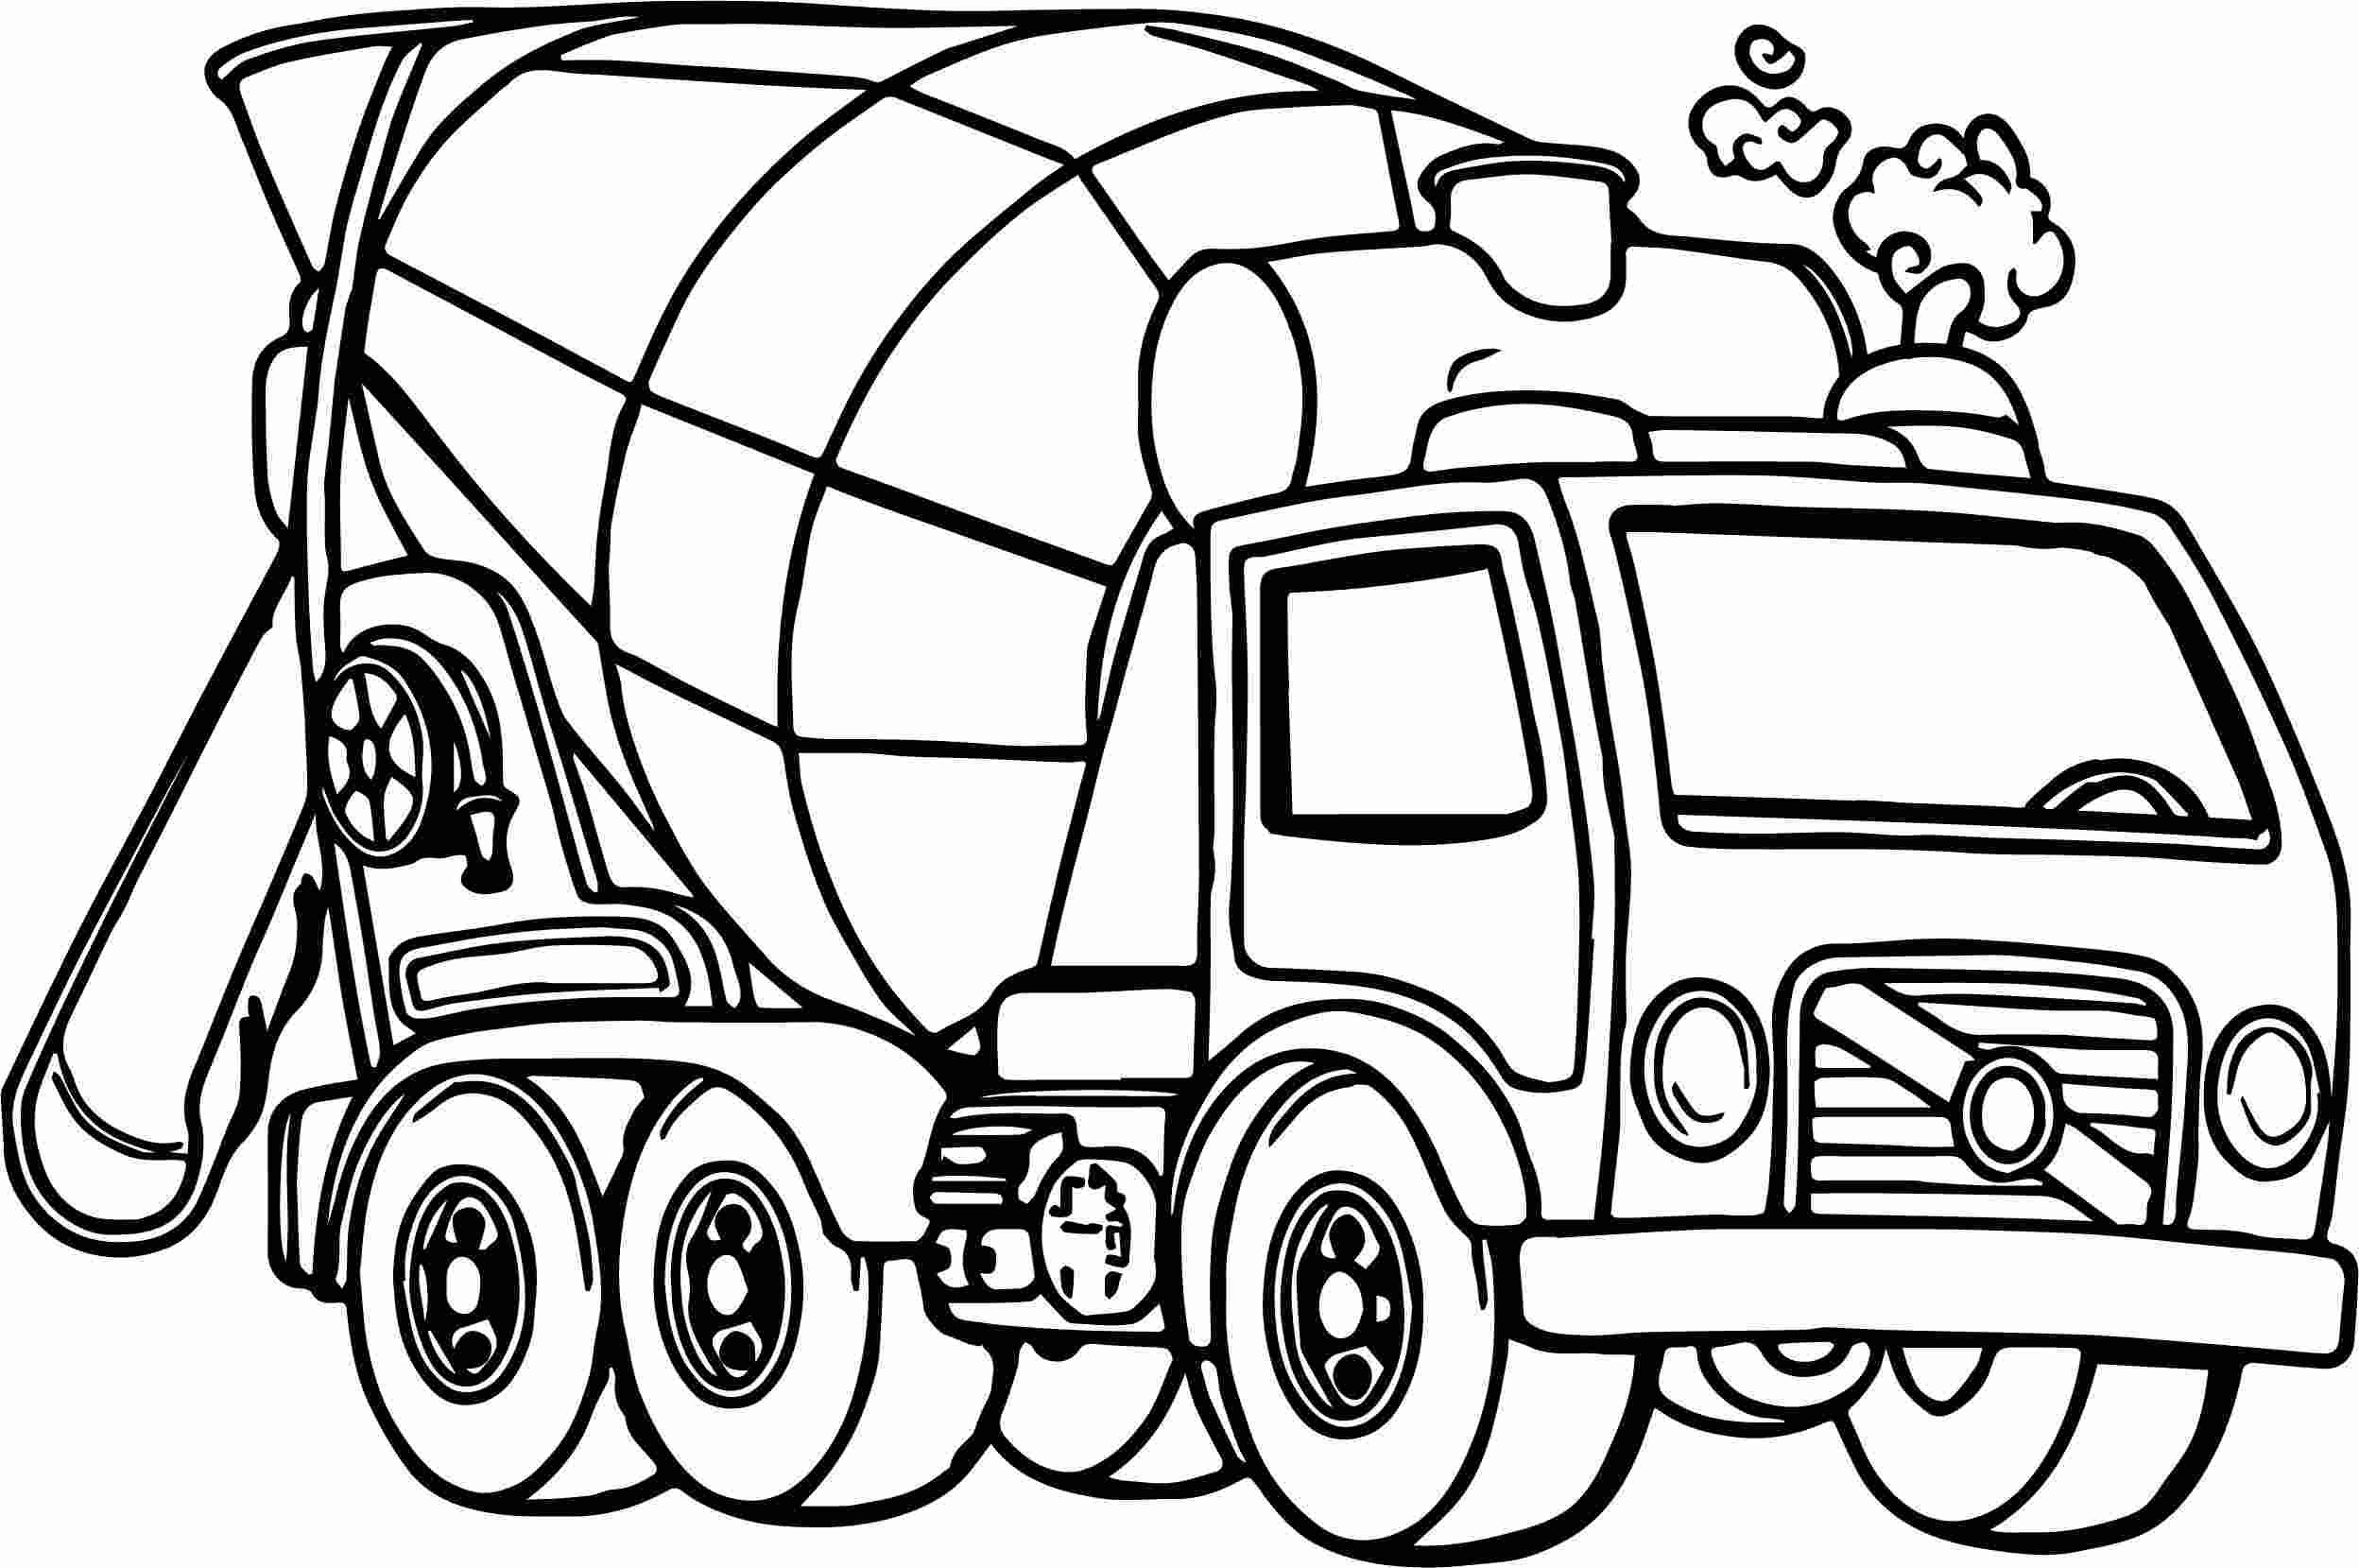 Coloring Pages Cc5500 Coloring Pages New 97 Printable Sheets